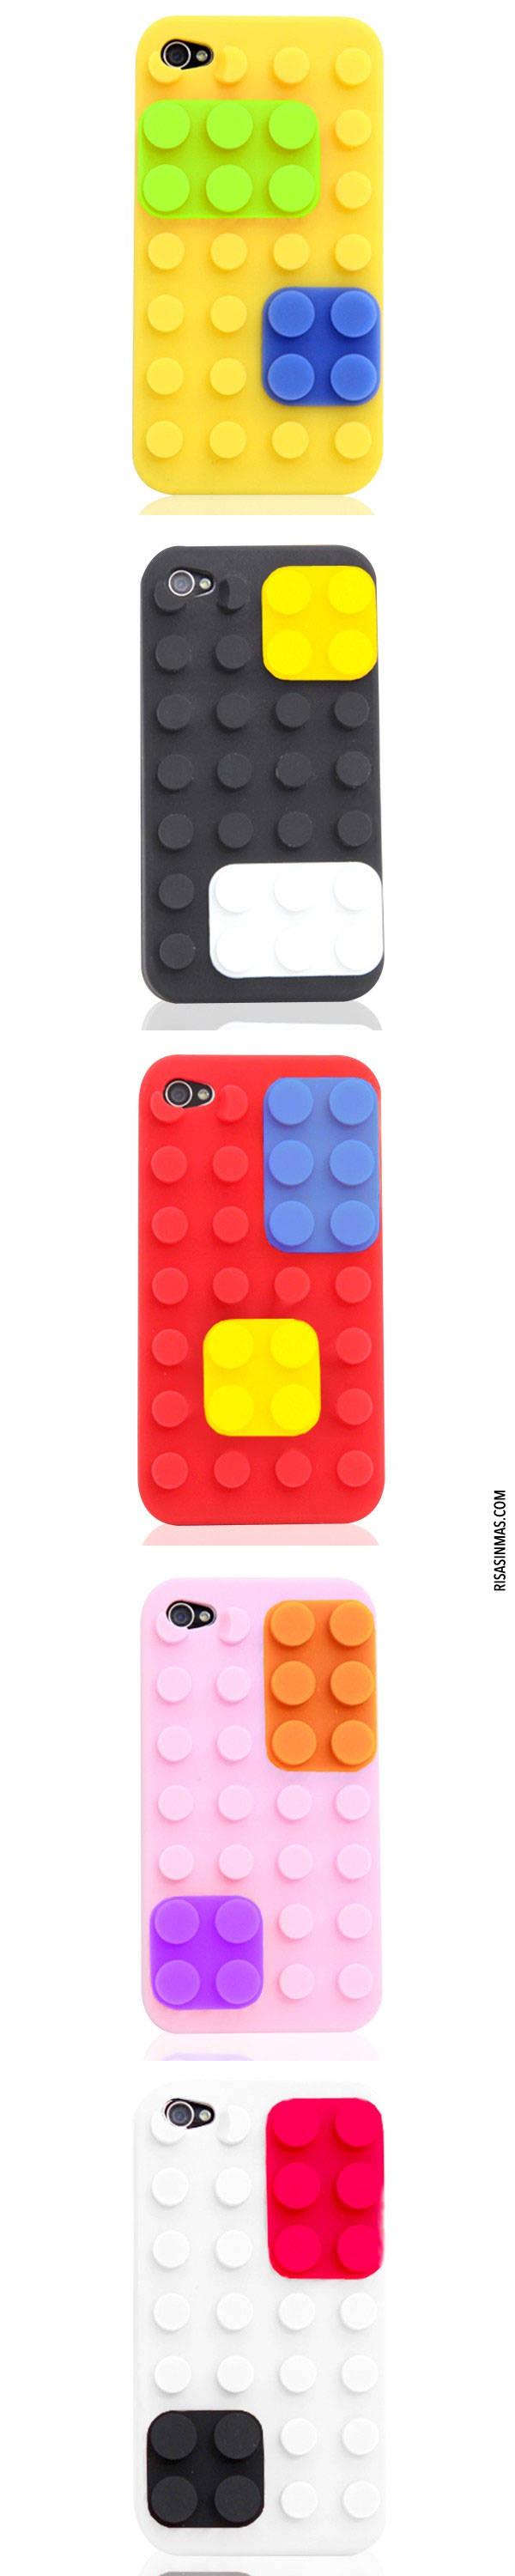 Fundas para iPhone: Bloque de Colores